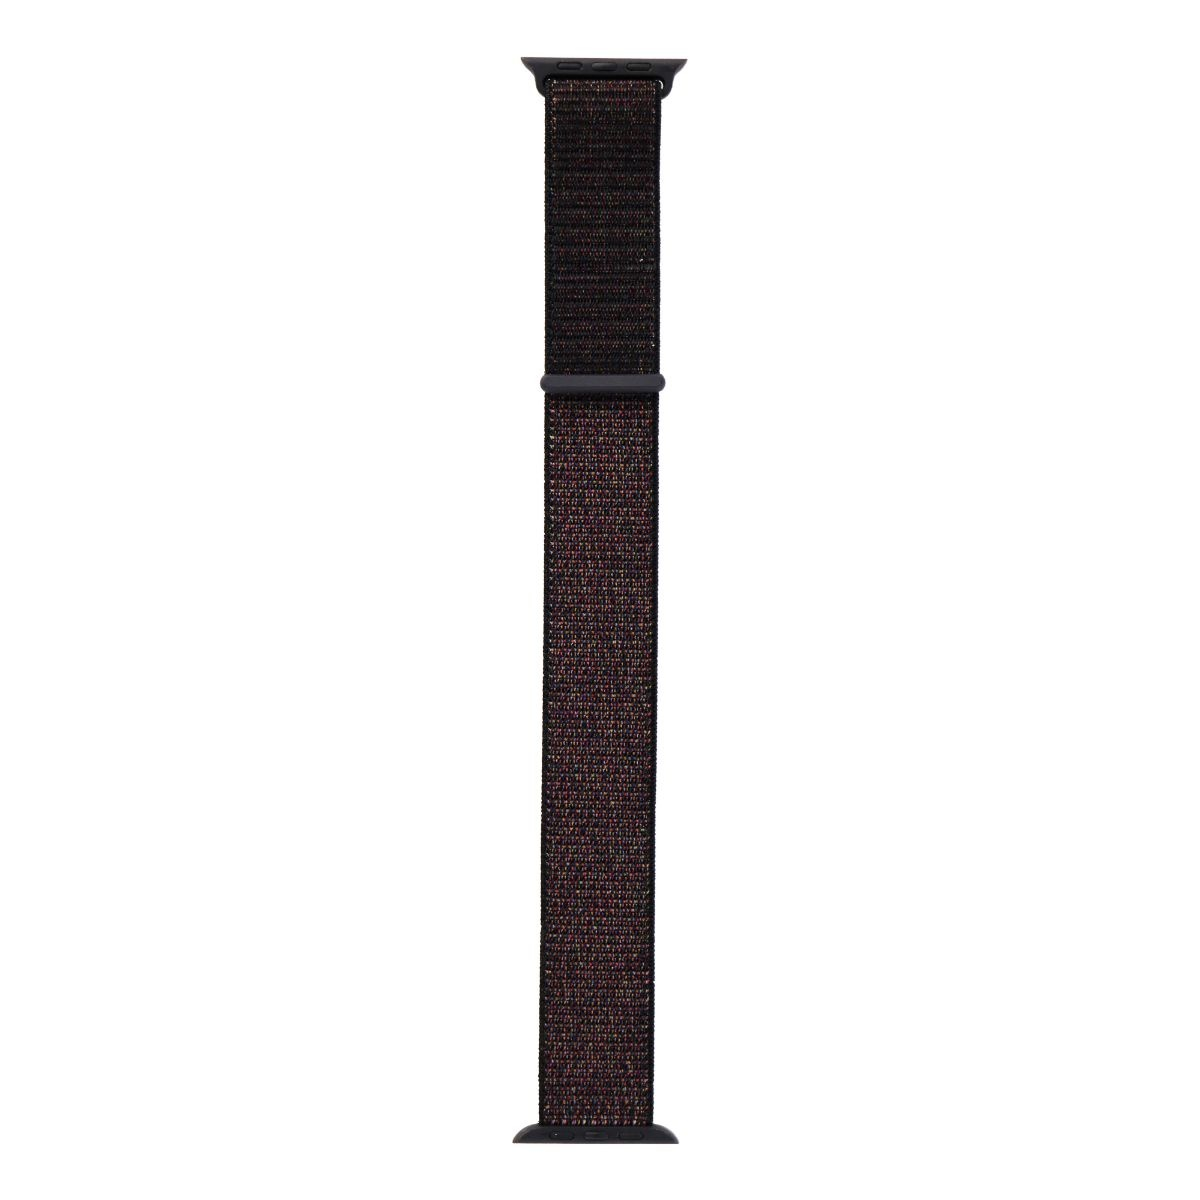 Apple Watch 42mm Sport Loop Watch Band for the Apple Watch - Black -L -MRMG2AM/A